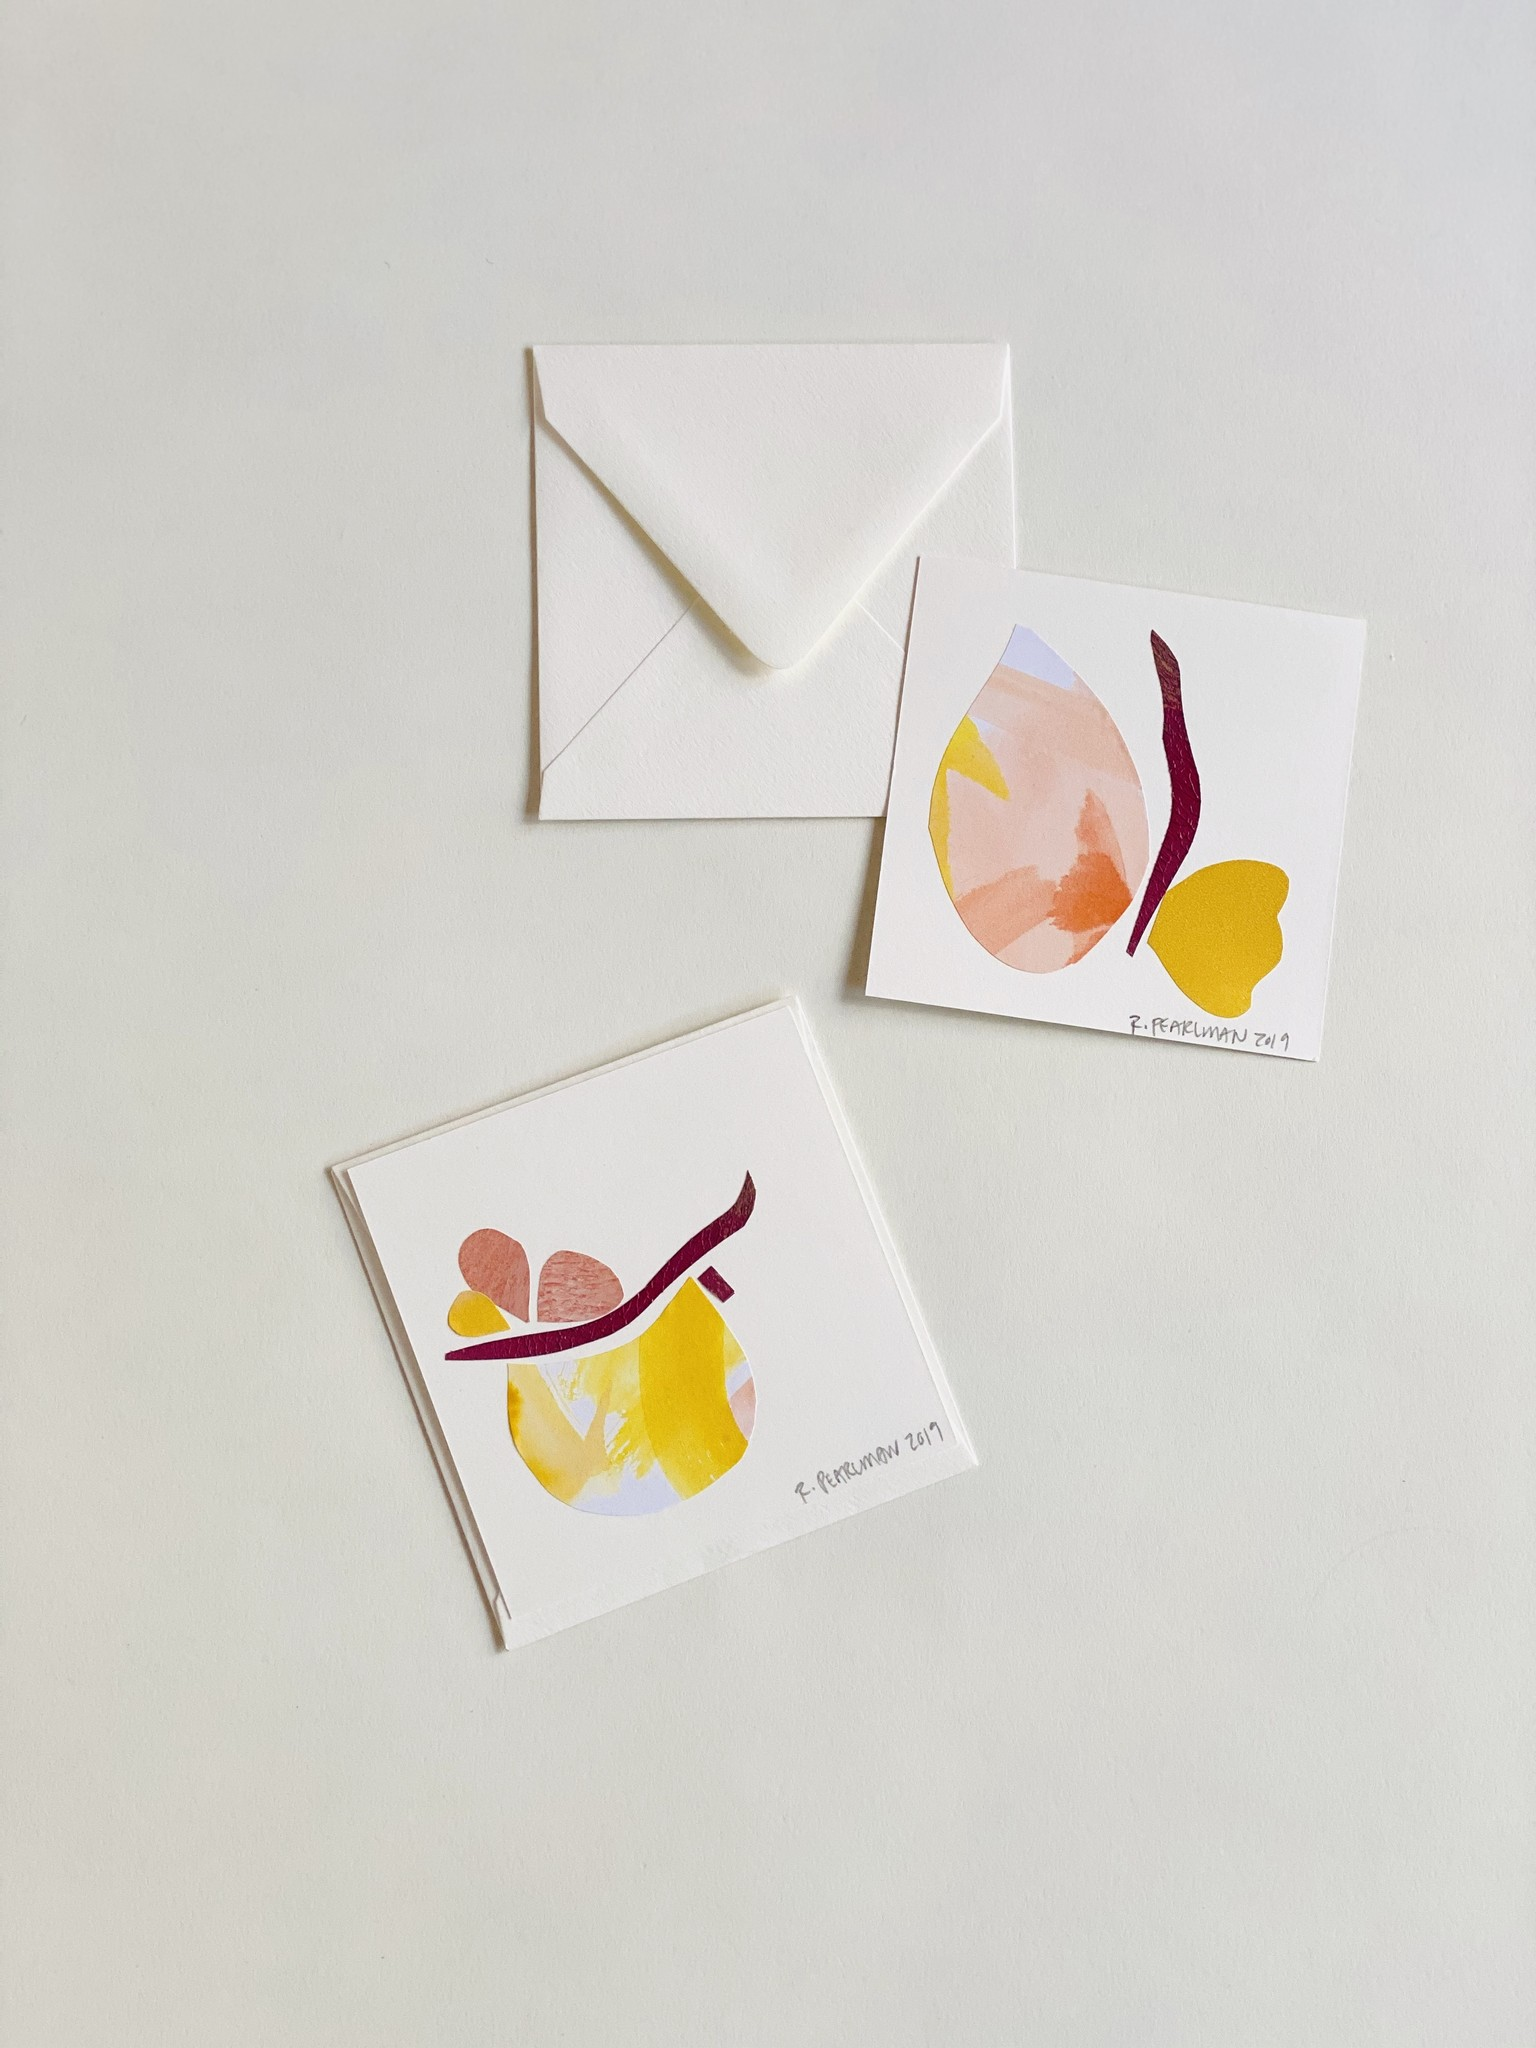 Rose Pearlman Collage Cards Handmade In Brooklyn